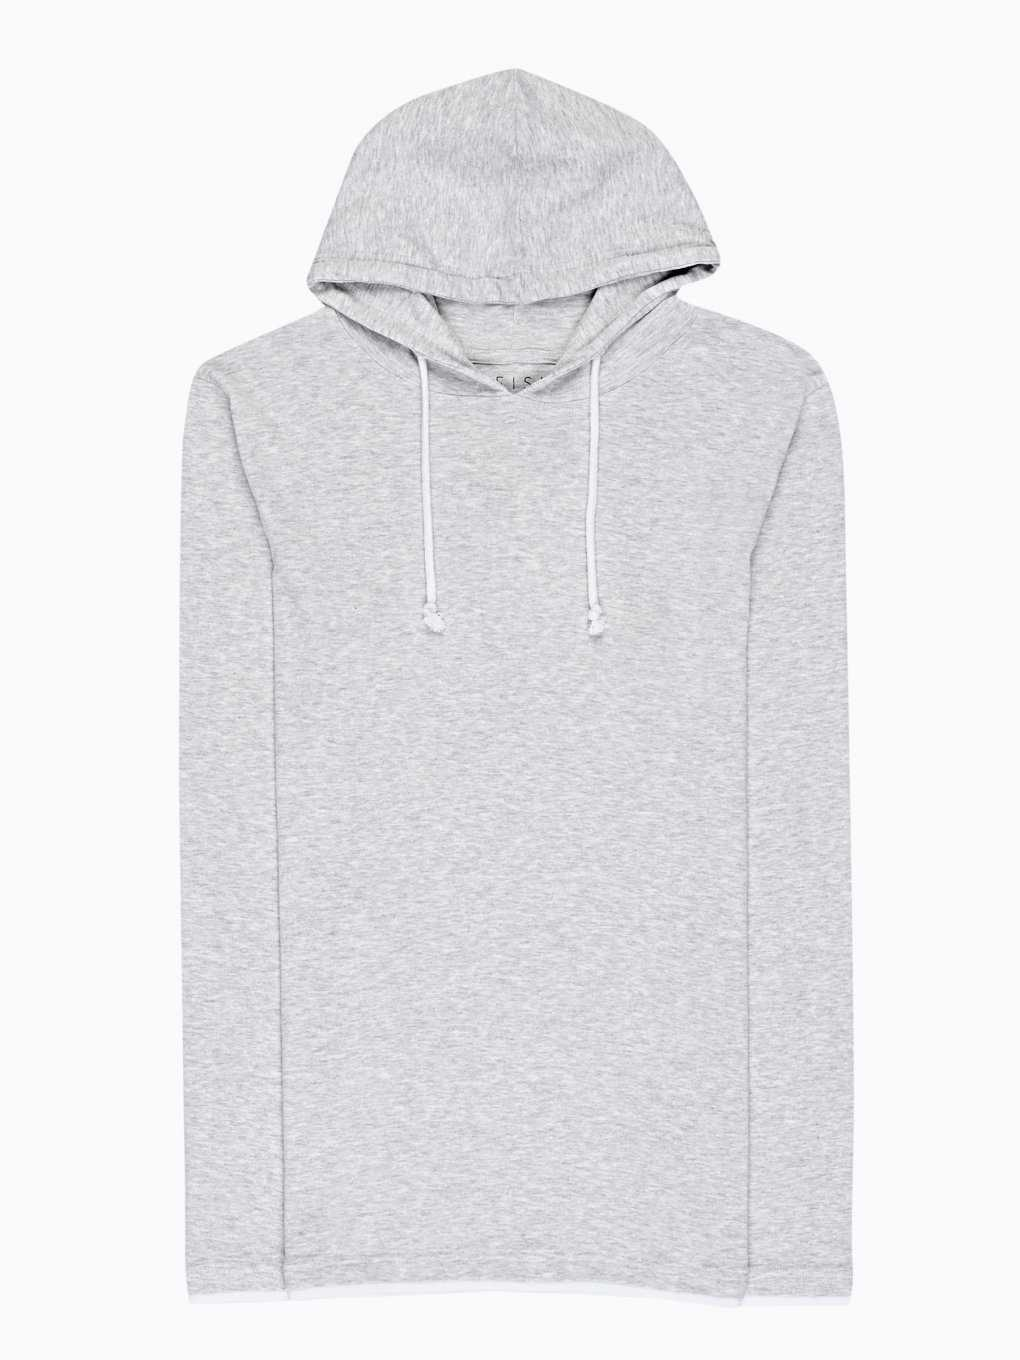 HOODED T-SHIRT WITH LONG SLEEVE